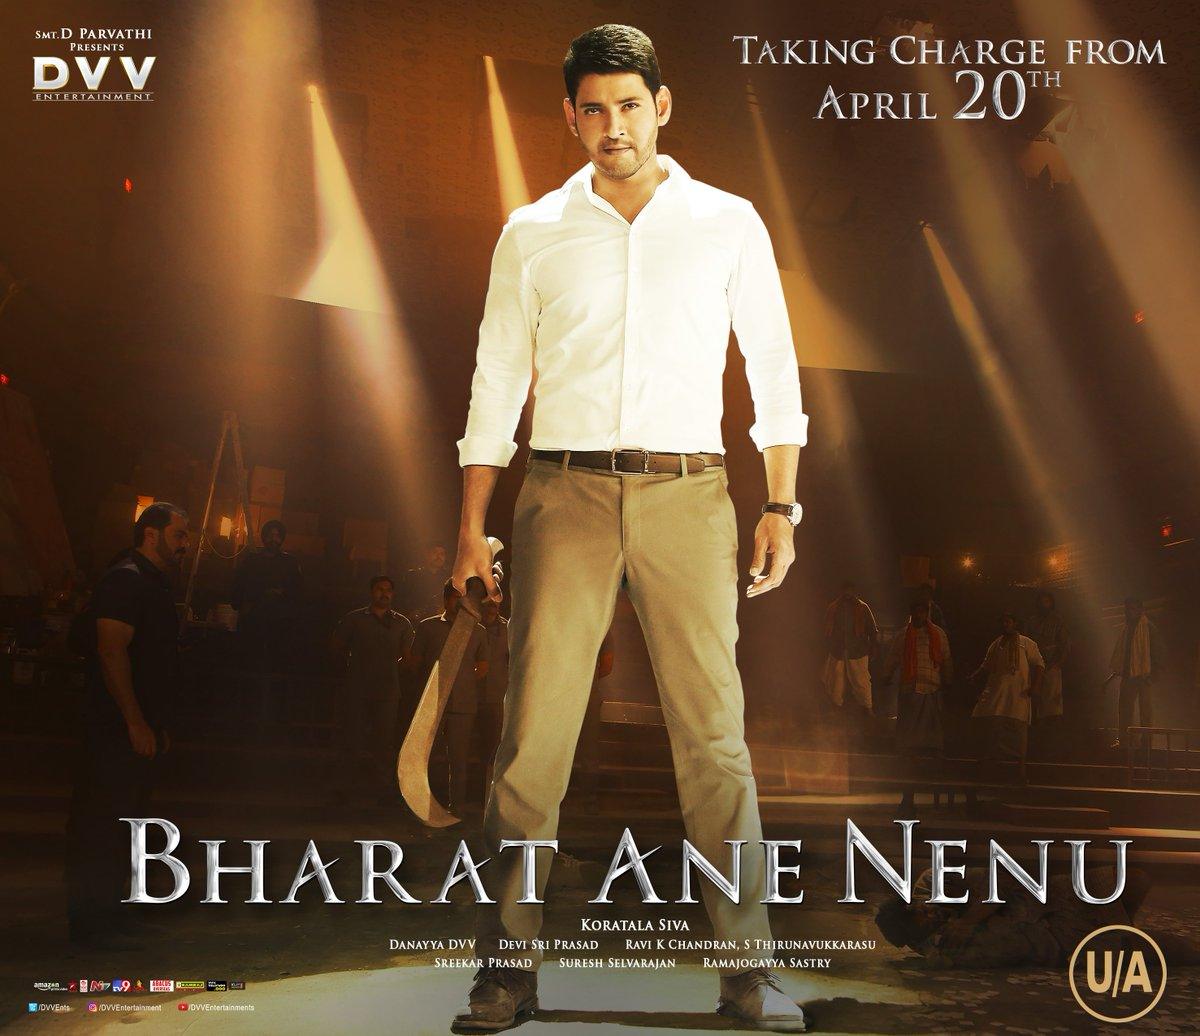 #Bharattakingchargein4days Latest News Trends Updates Images - DVVEnts